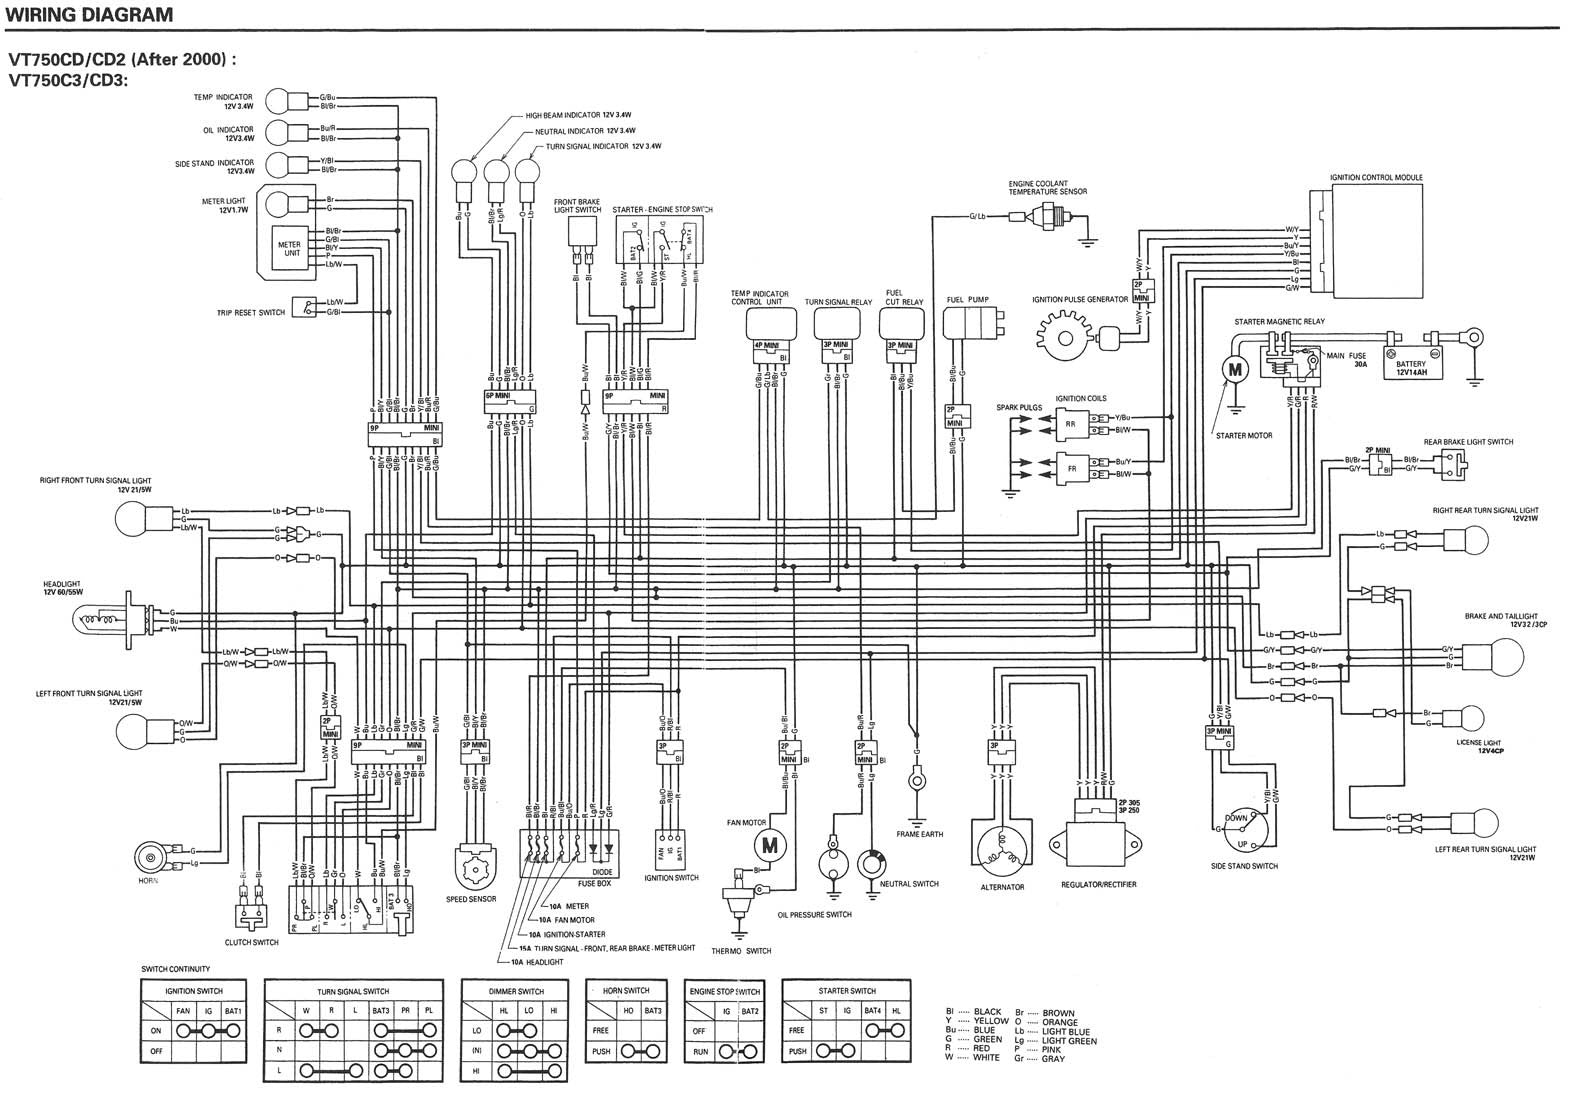 VT750_ACE_Wiring_Diagram_2001 2003_V.2?17490154244262524096 faq tj brutal customs 1999 Honda 1100 Ace at panicattacktreatment.co